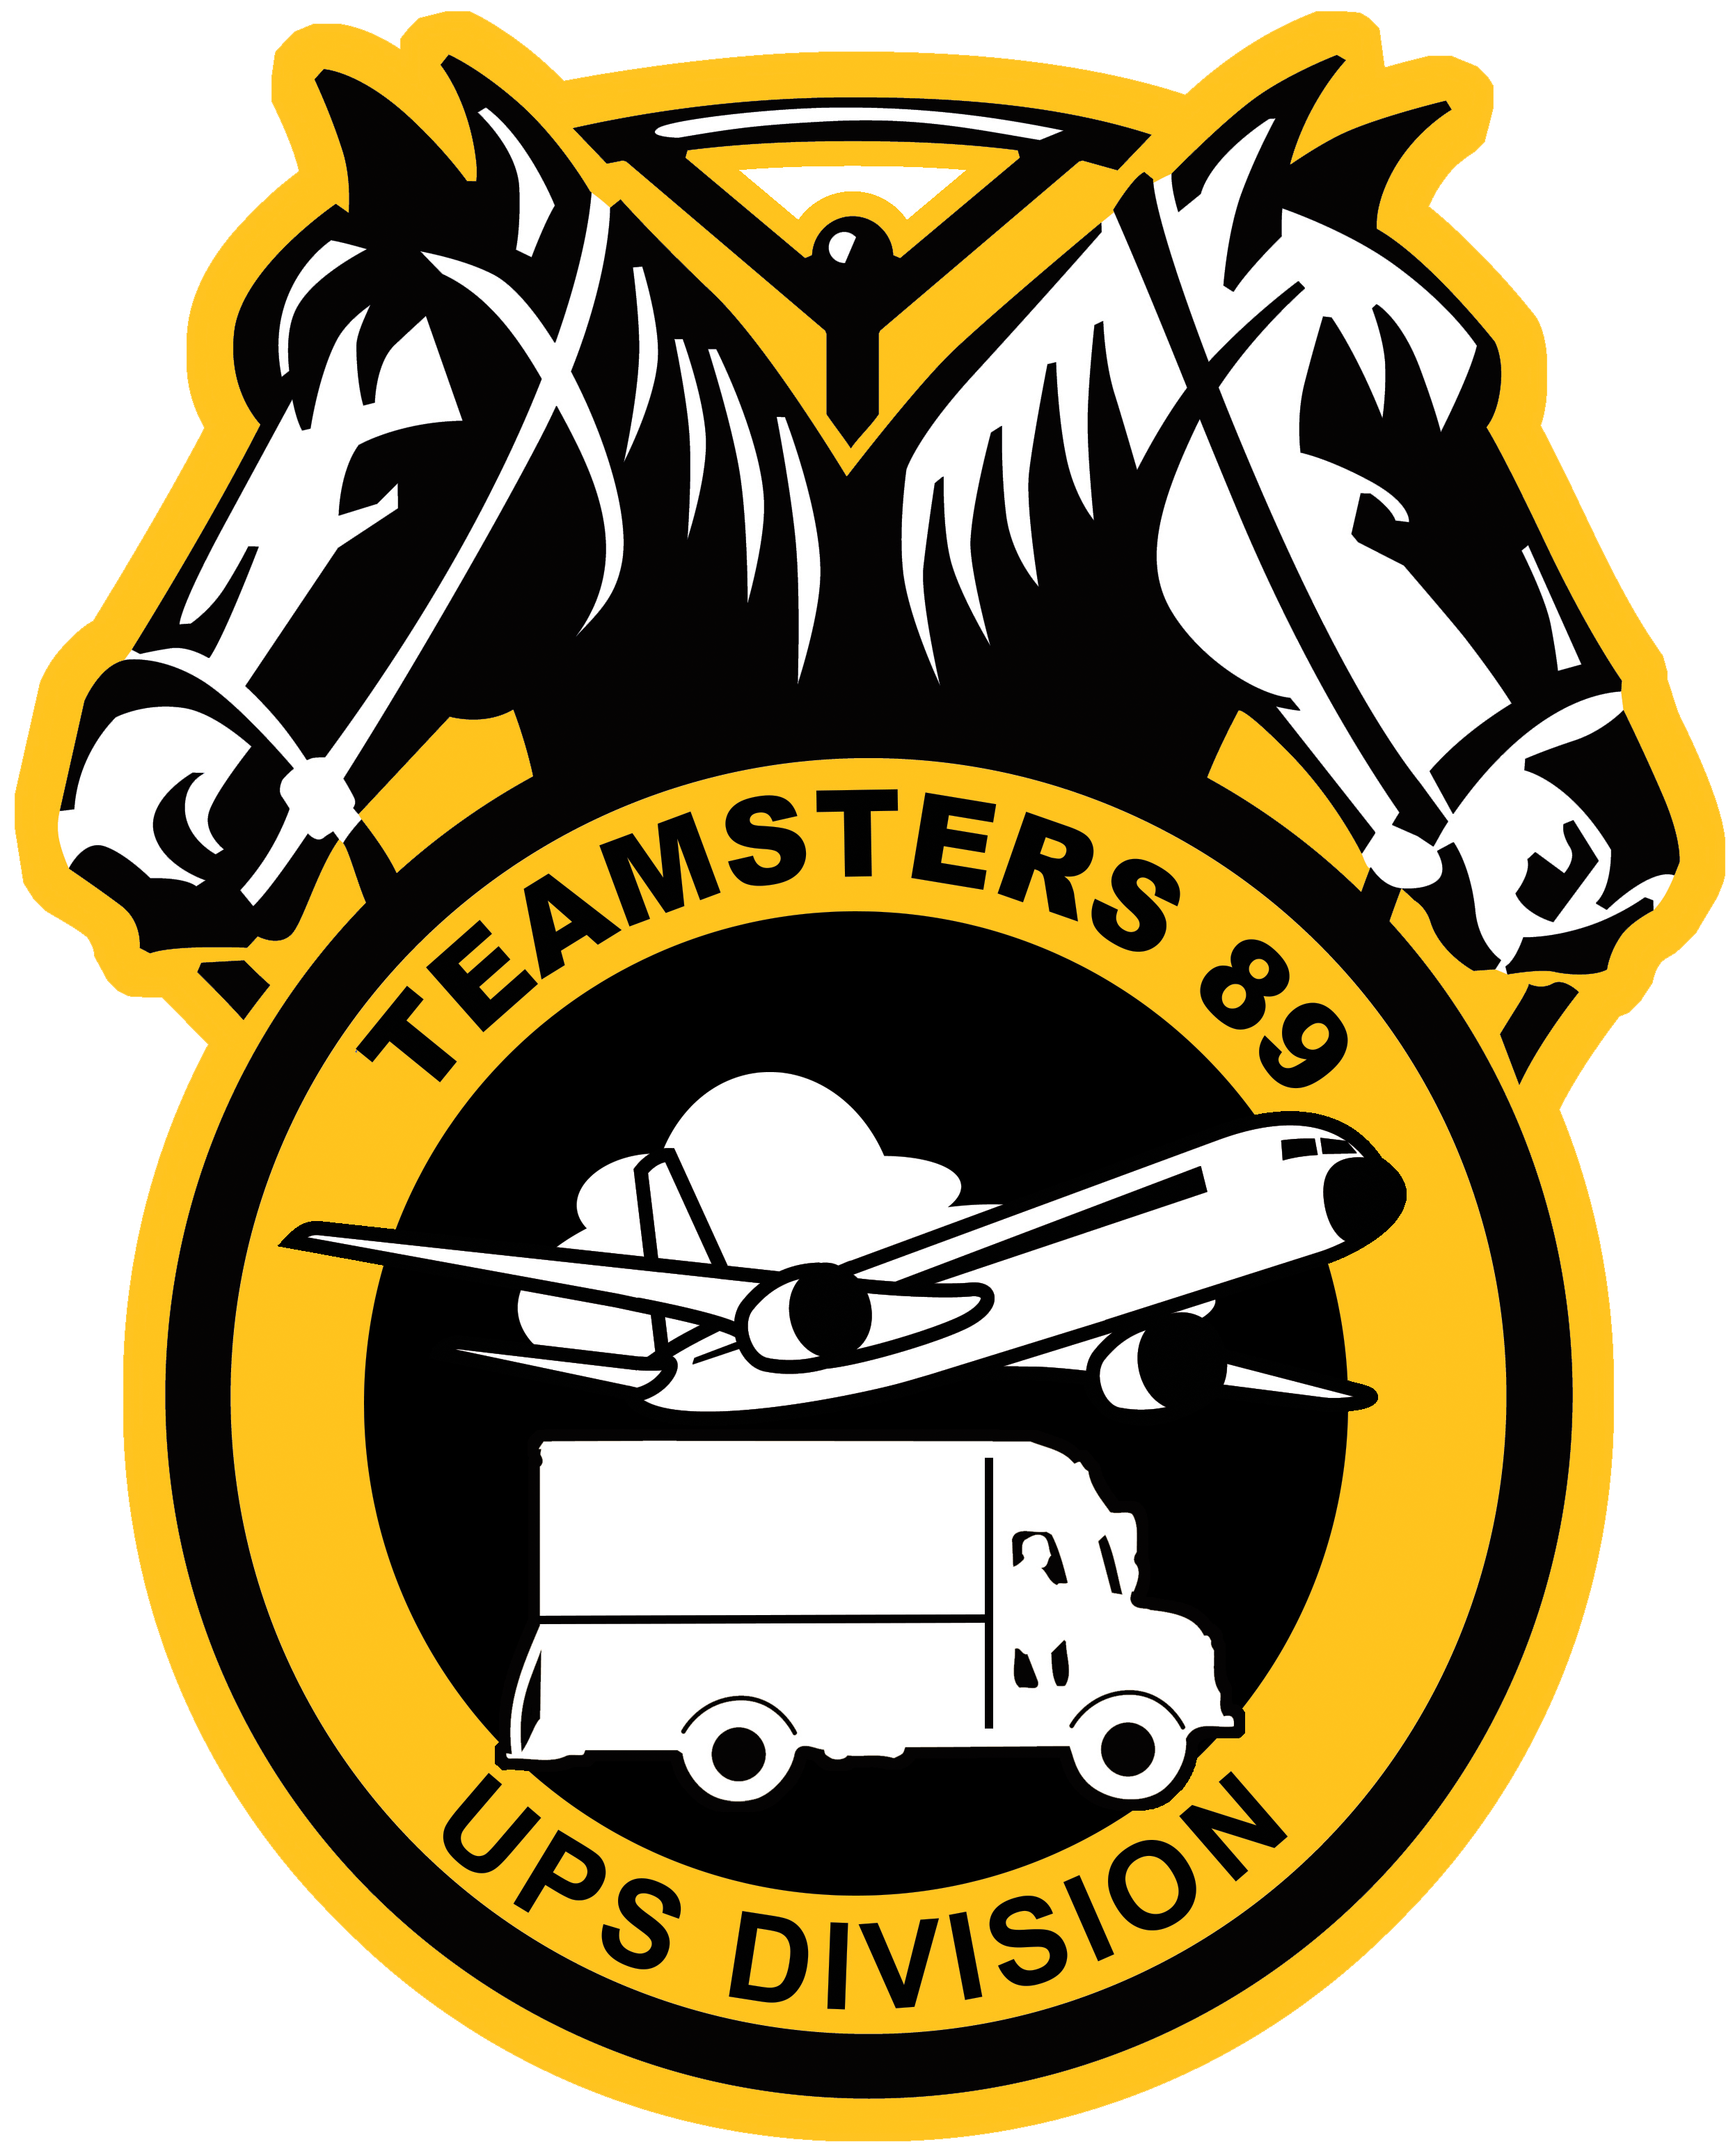 Teamsters Local 89 | UPS Division